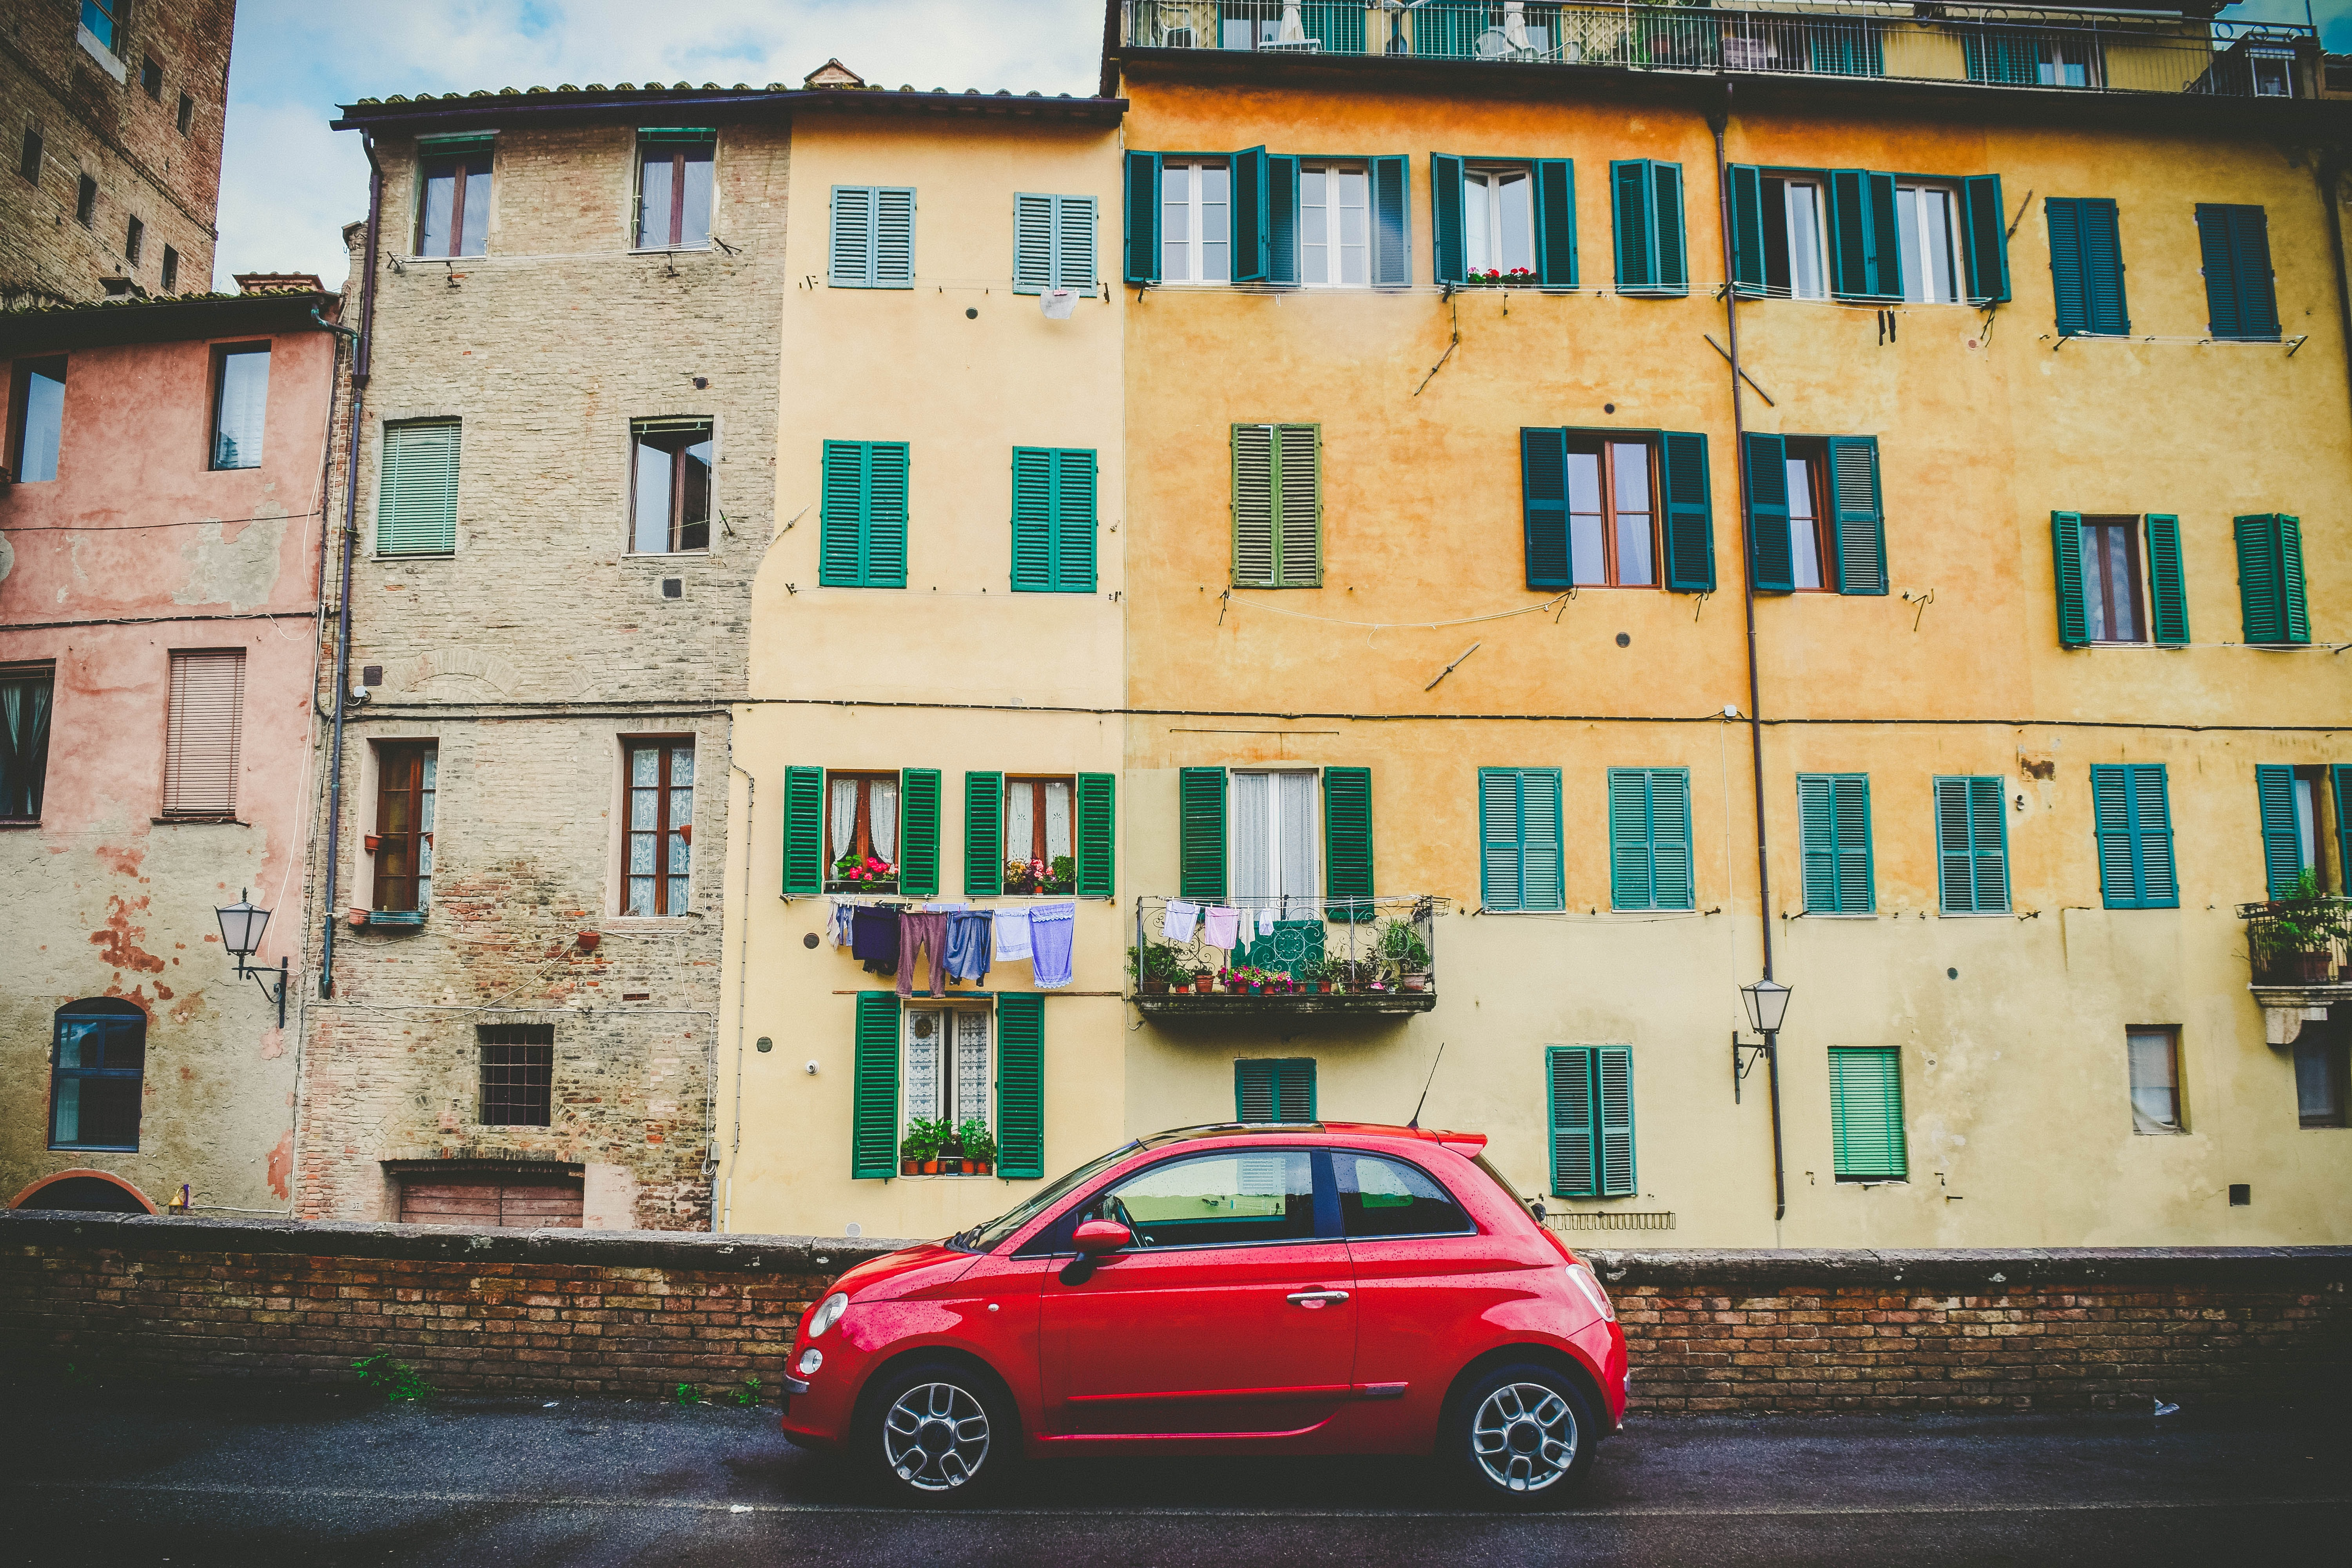 Modern red vehicle parked in front of traditional yellow apartments with green windows, Province of Siena